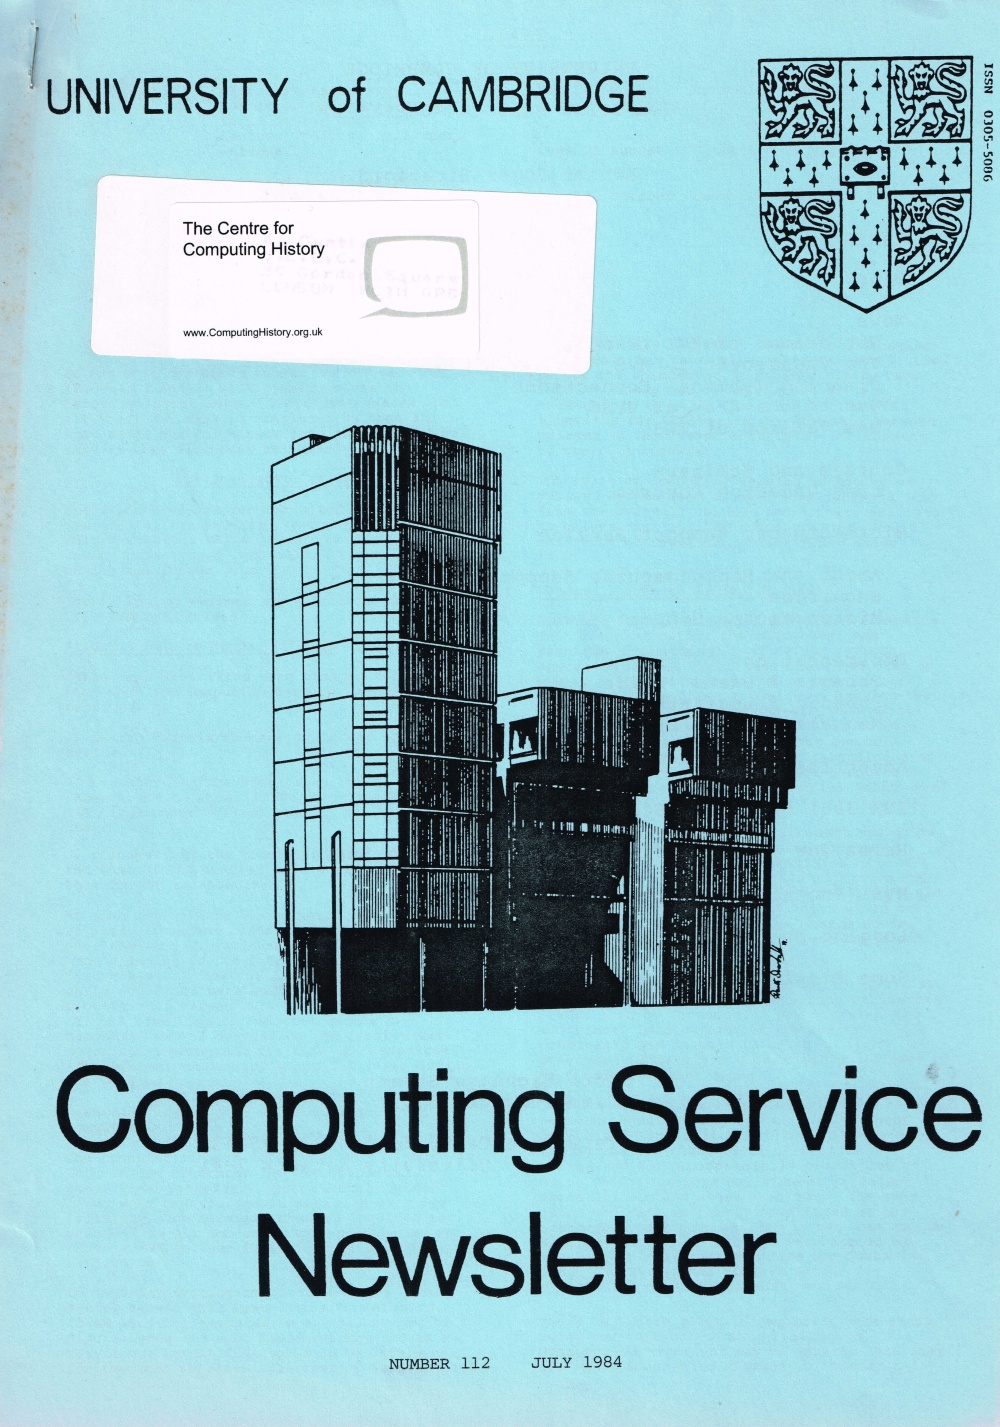 Article: University of Cambridge Computing Service May 1984 Newsletter 112